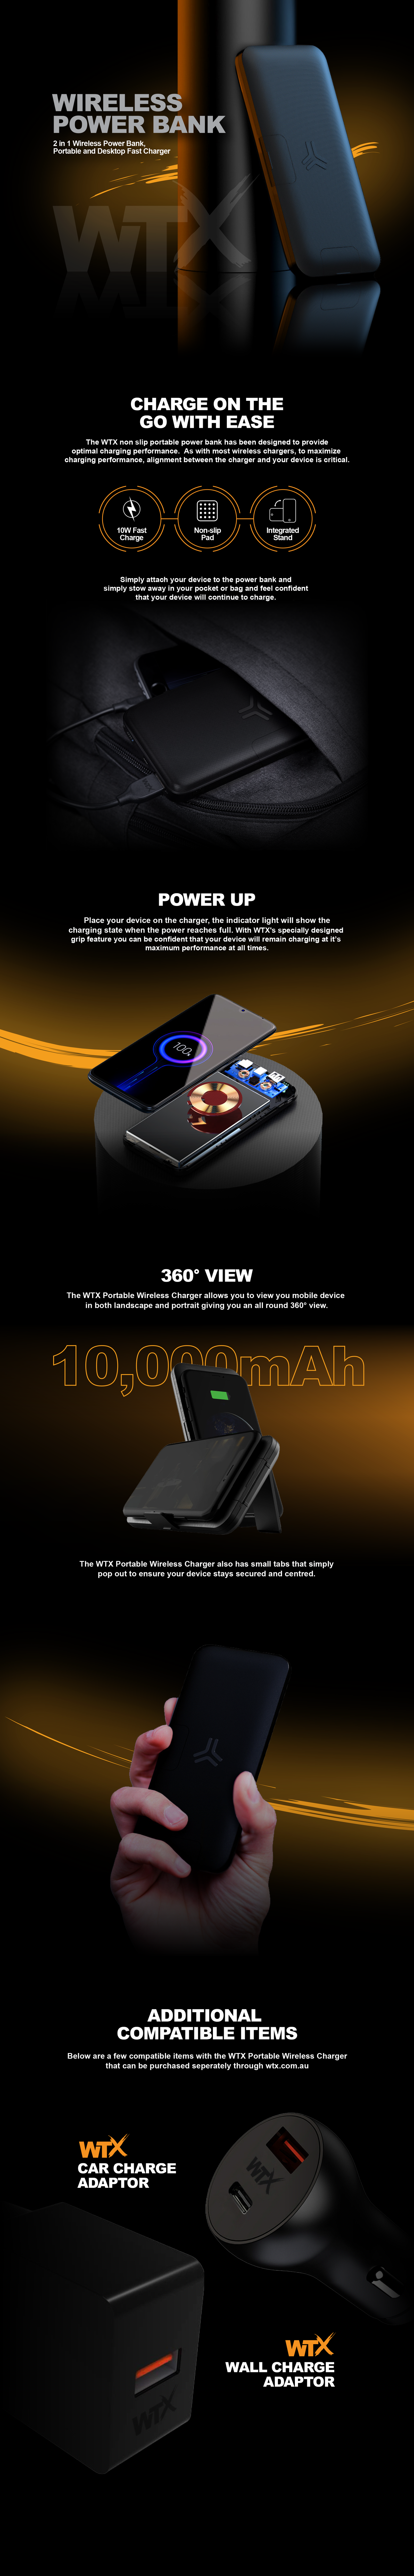 Image of WTX 2in1 Portable Powerbank